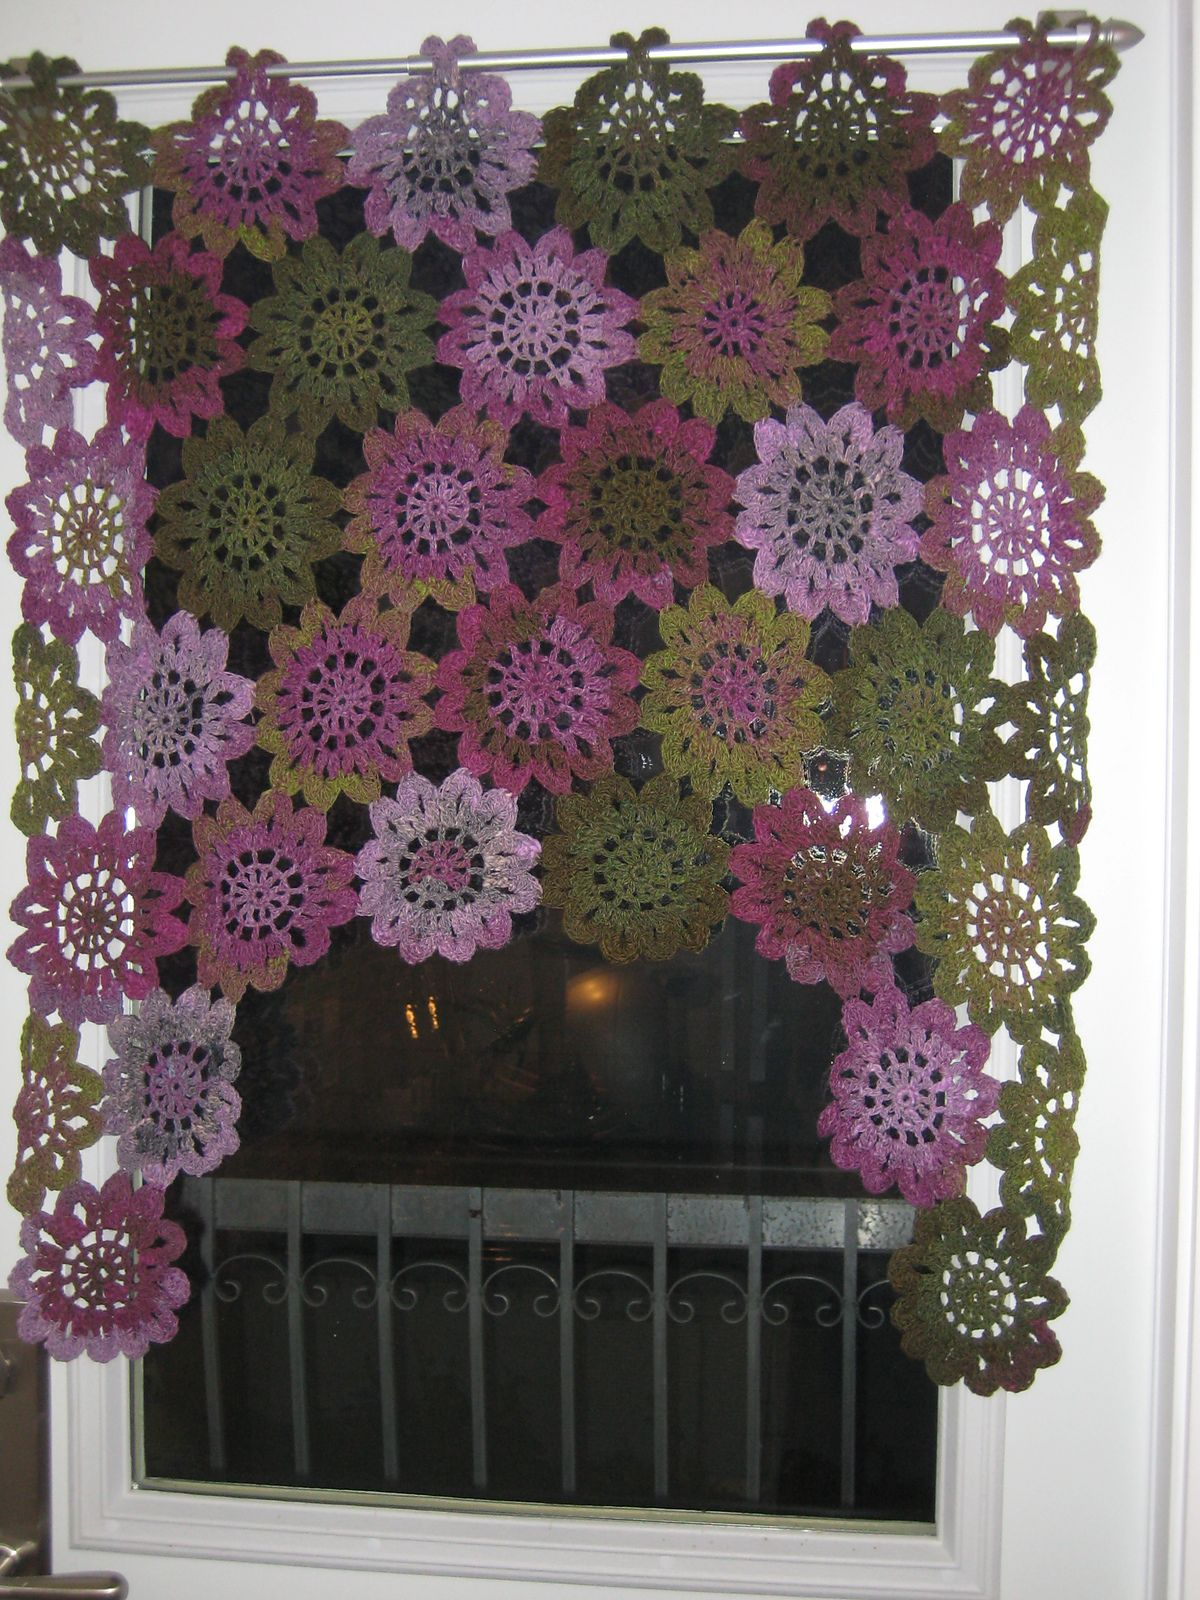 Crochetted doily curtain beautiful crochet ideas pinterest crochetted doily curtain beautiful izmirmasajfo Image collections